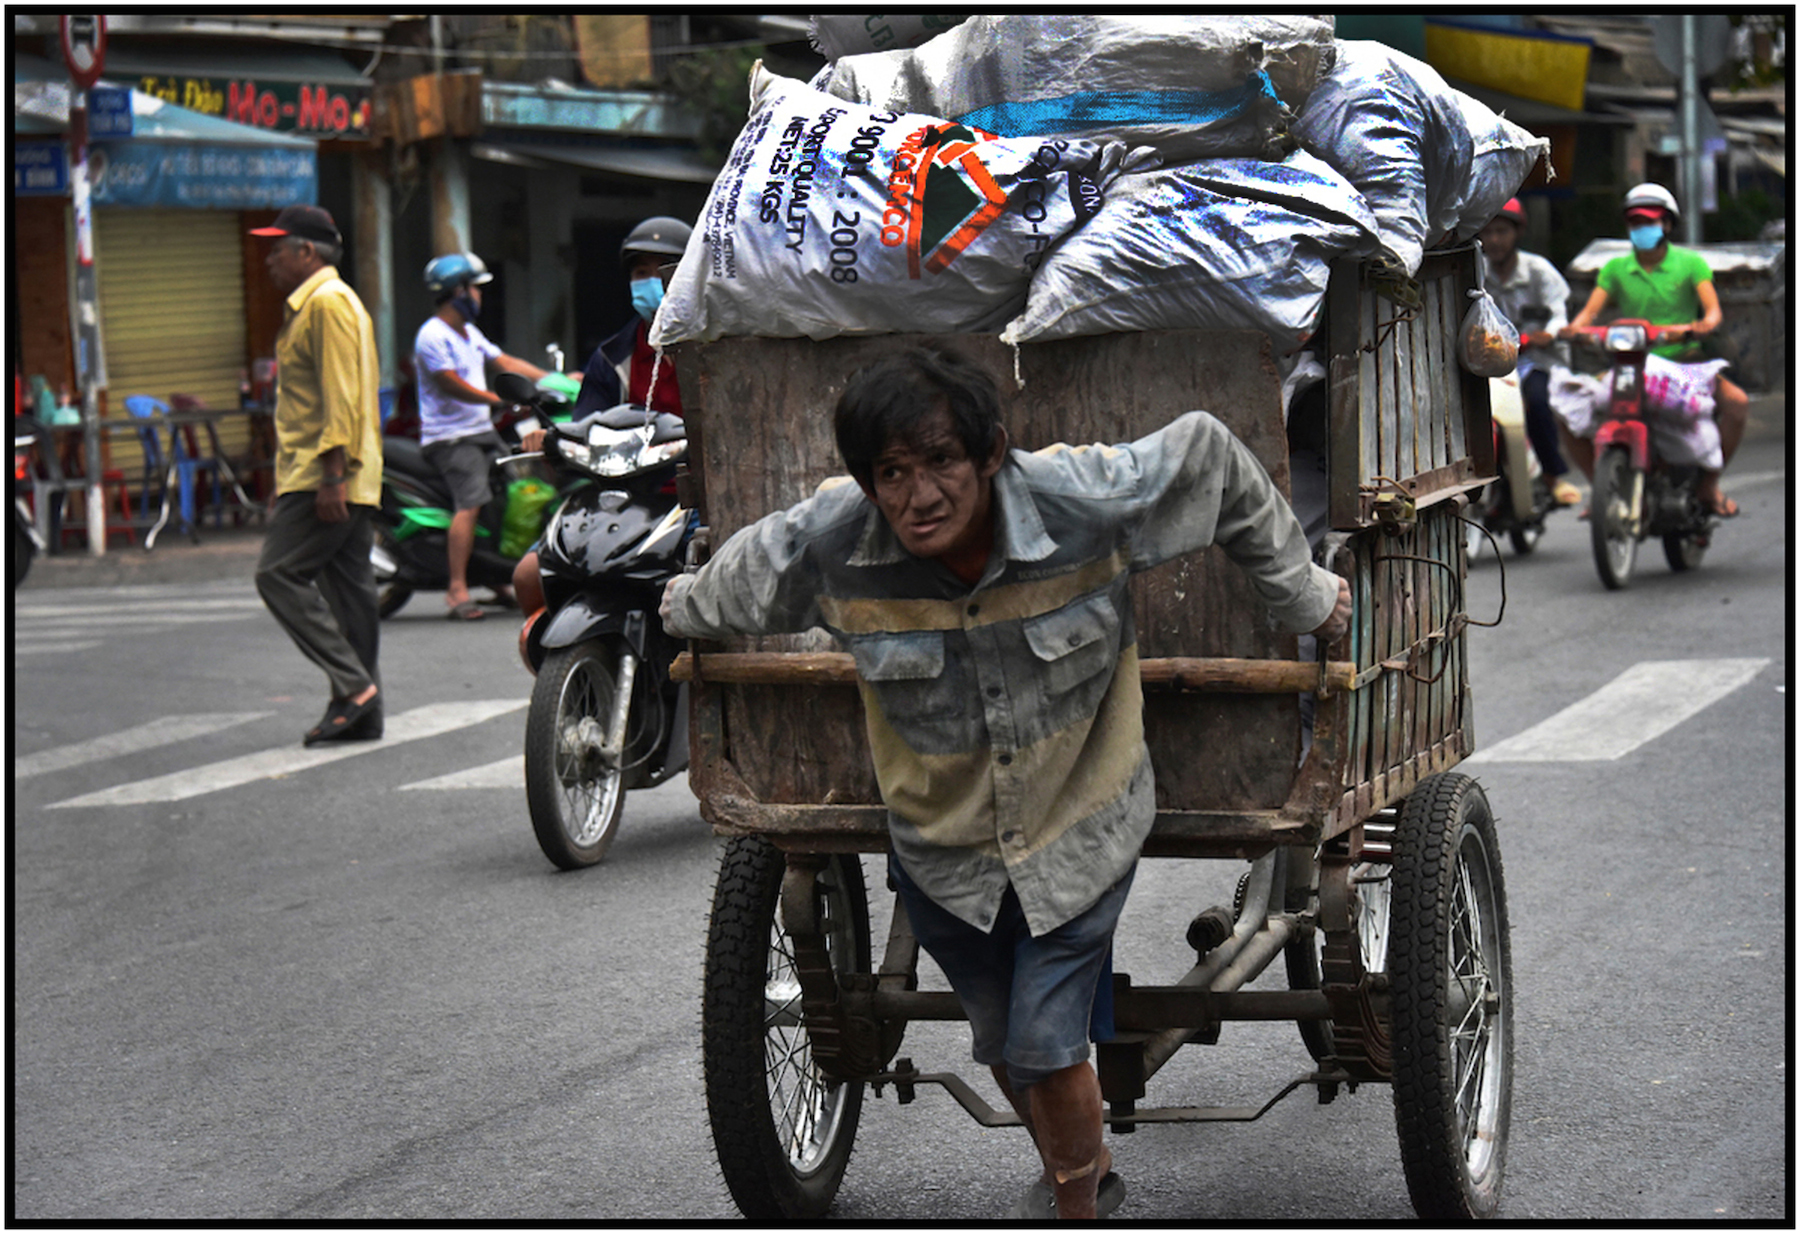 Impoverished worker and recyclables, Saigon/HCMC.Dec. 2015. #4294